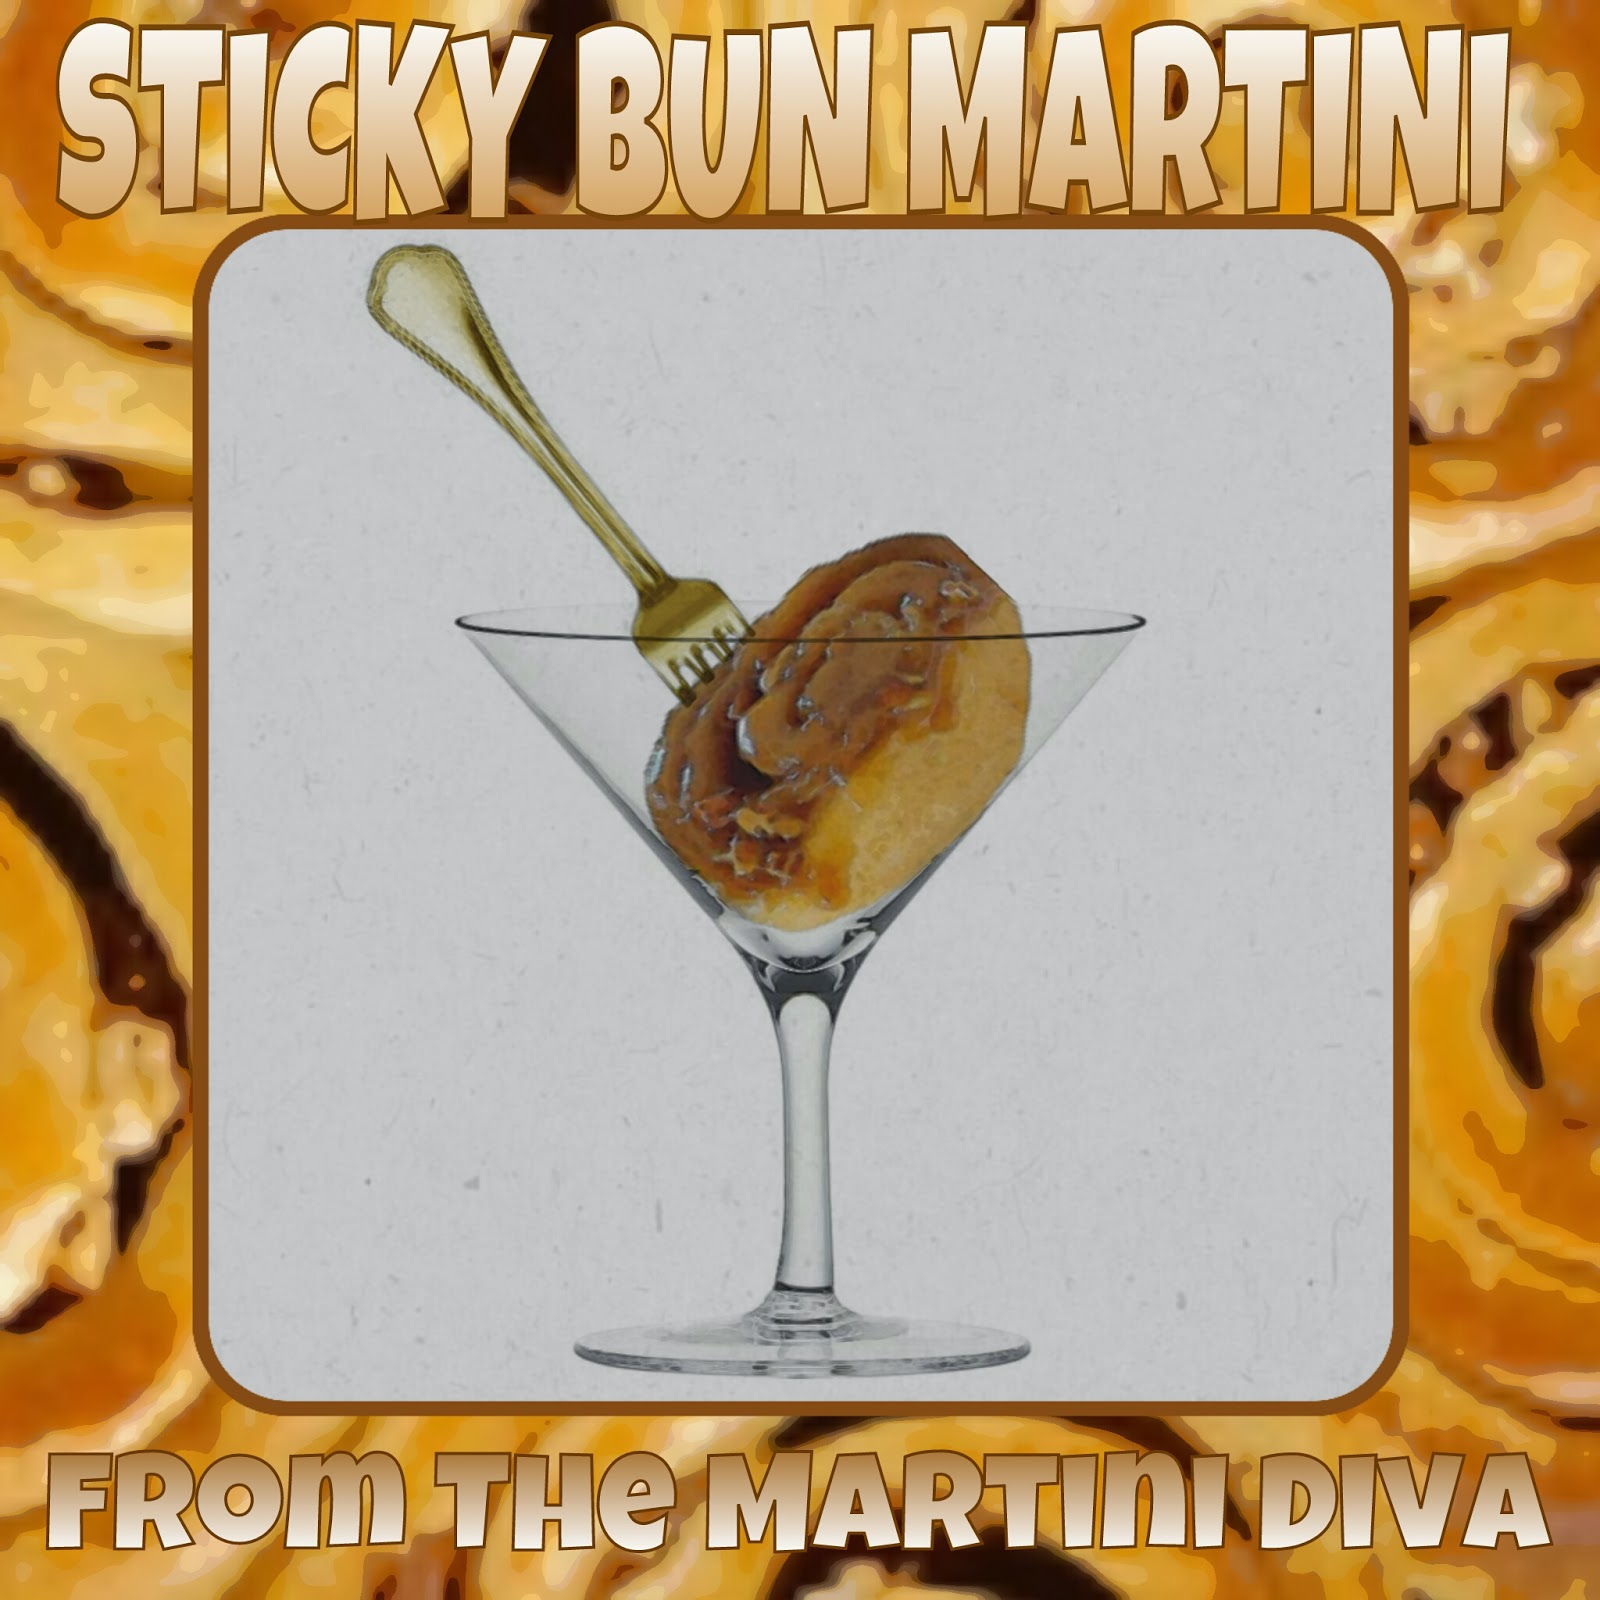 http://themartinidiva.blogspot.com/2015/07/candied-pecan-nut-liqueur-recipe.html